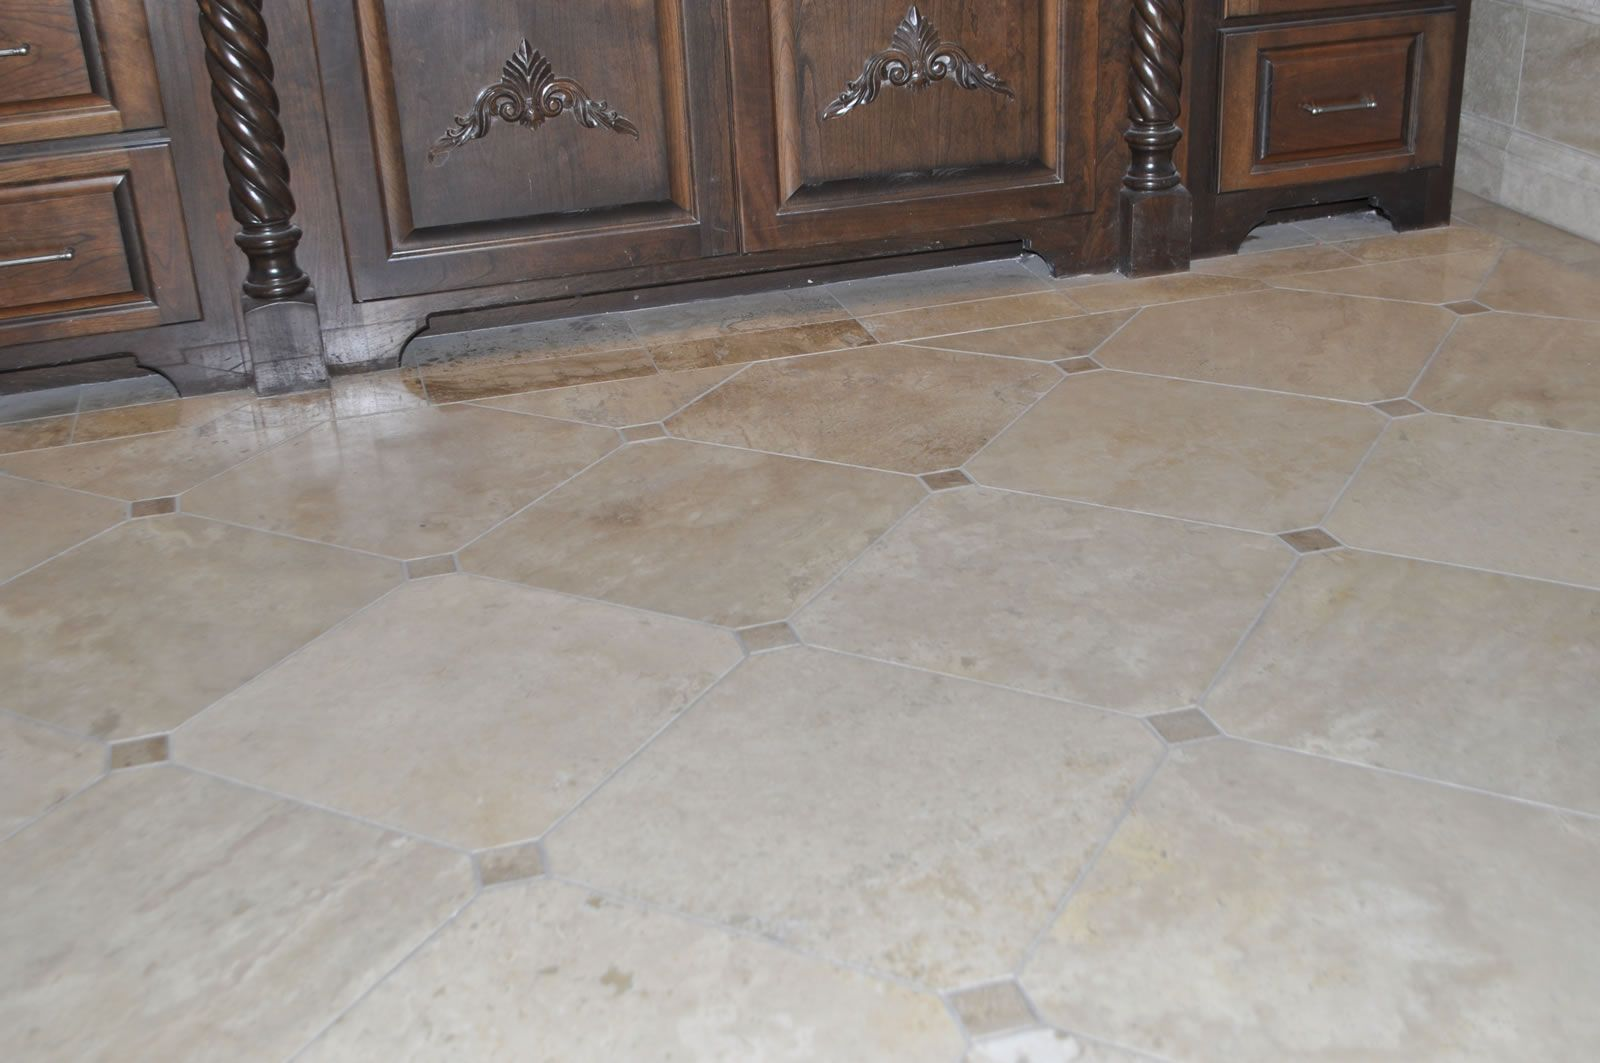 Porcelain Tile In Living Room Ceramic Porcelain Stone Mosaic Floor Tile Flooring Ceramic